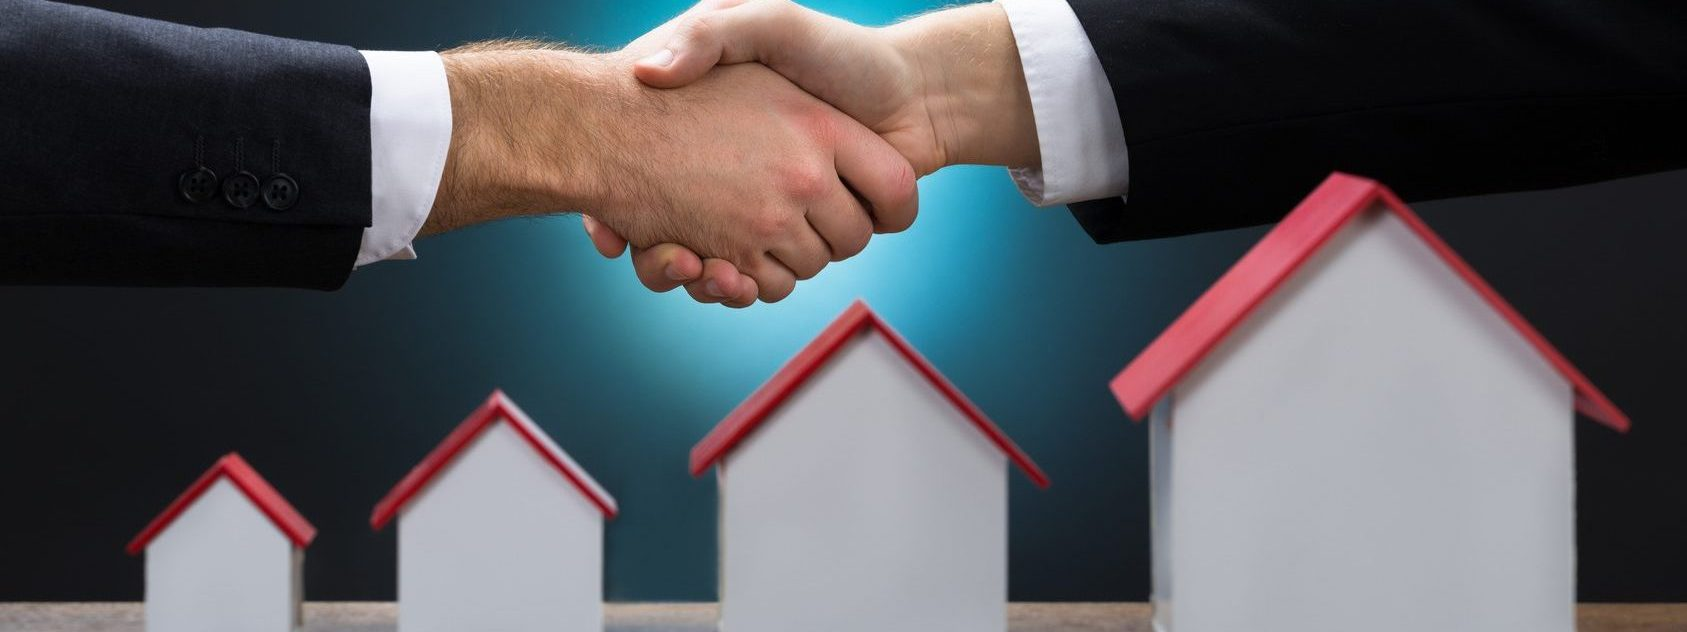 https://apps-gate.net/wp-content/uploads/2020/05/mythbusting-things-to-know-about-property-agents-e1588715415348.jpg